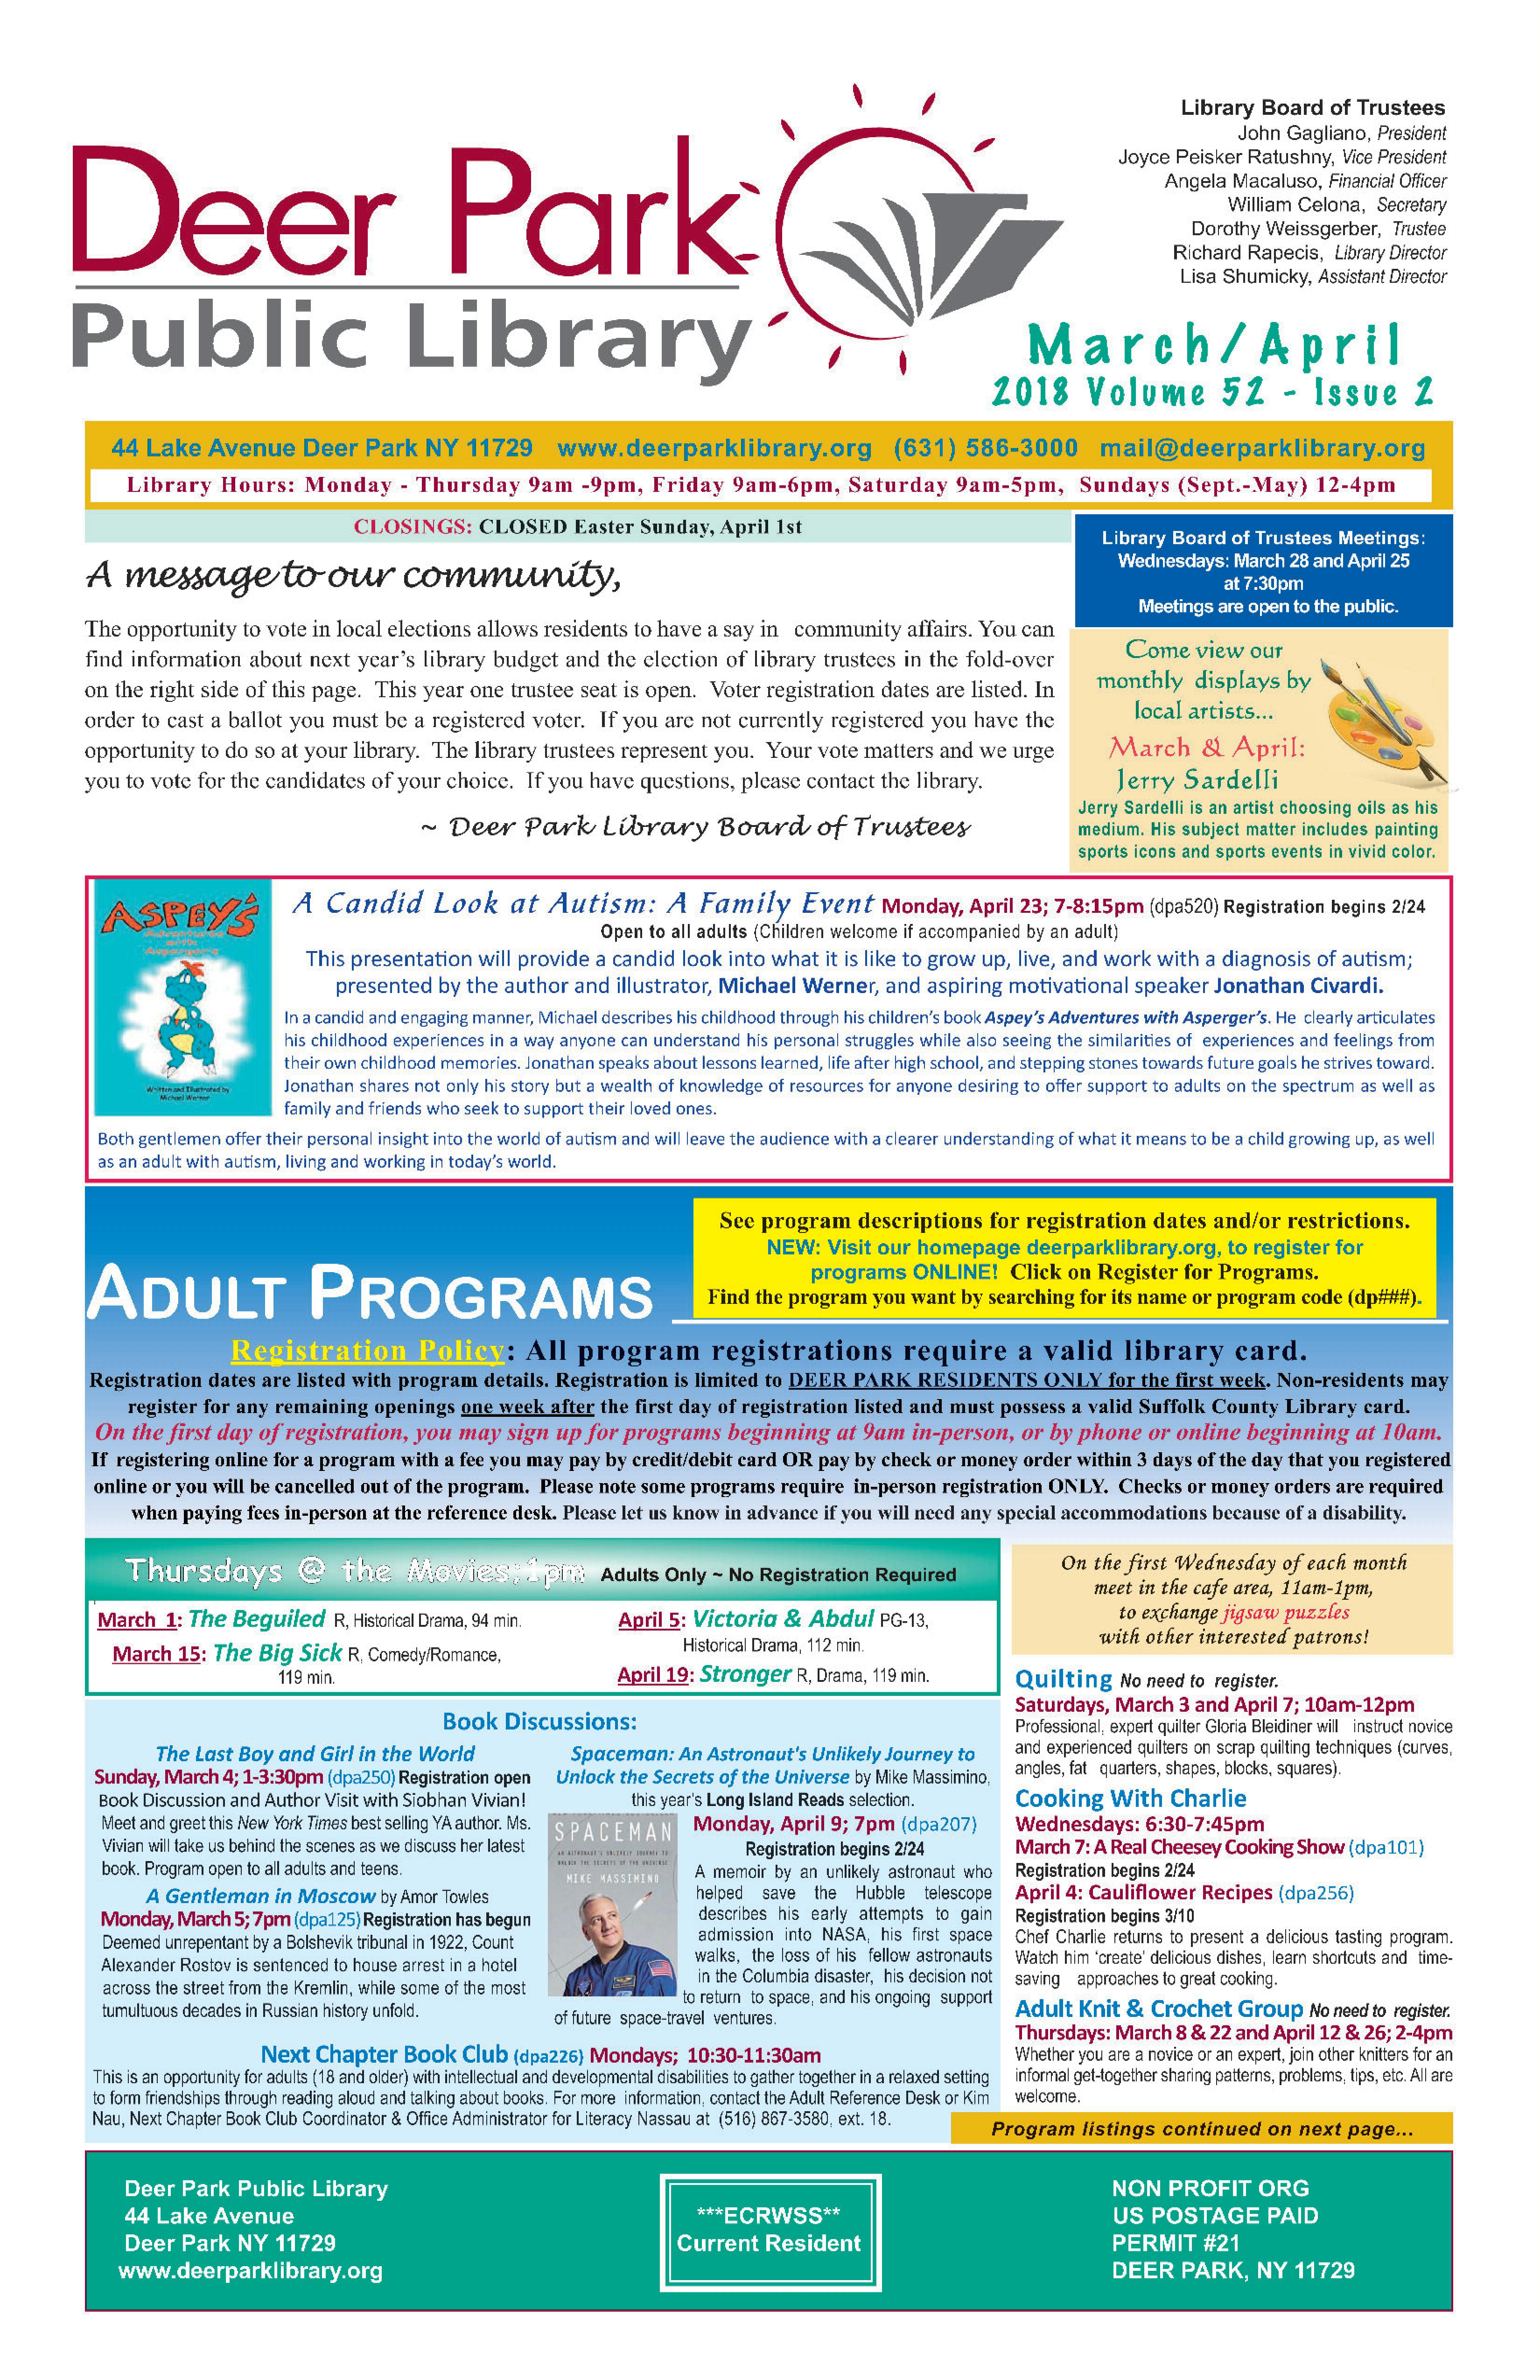 2018 March/April Newsletter 1st Page Image